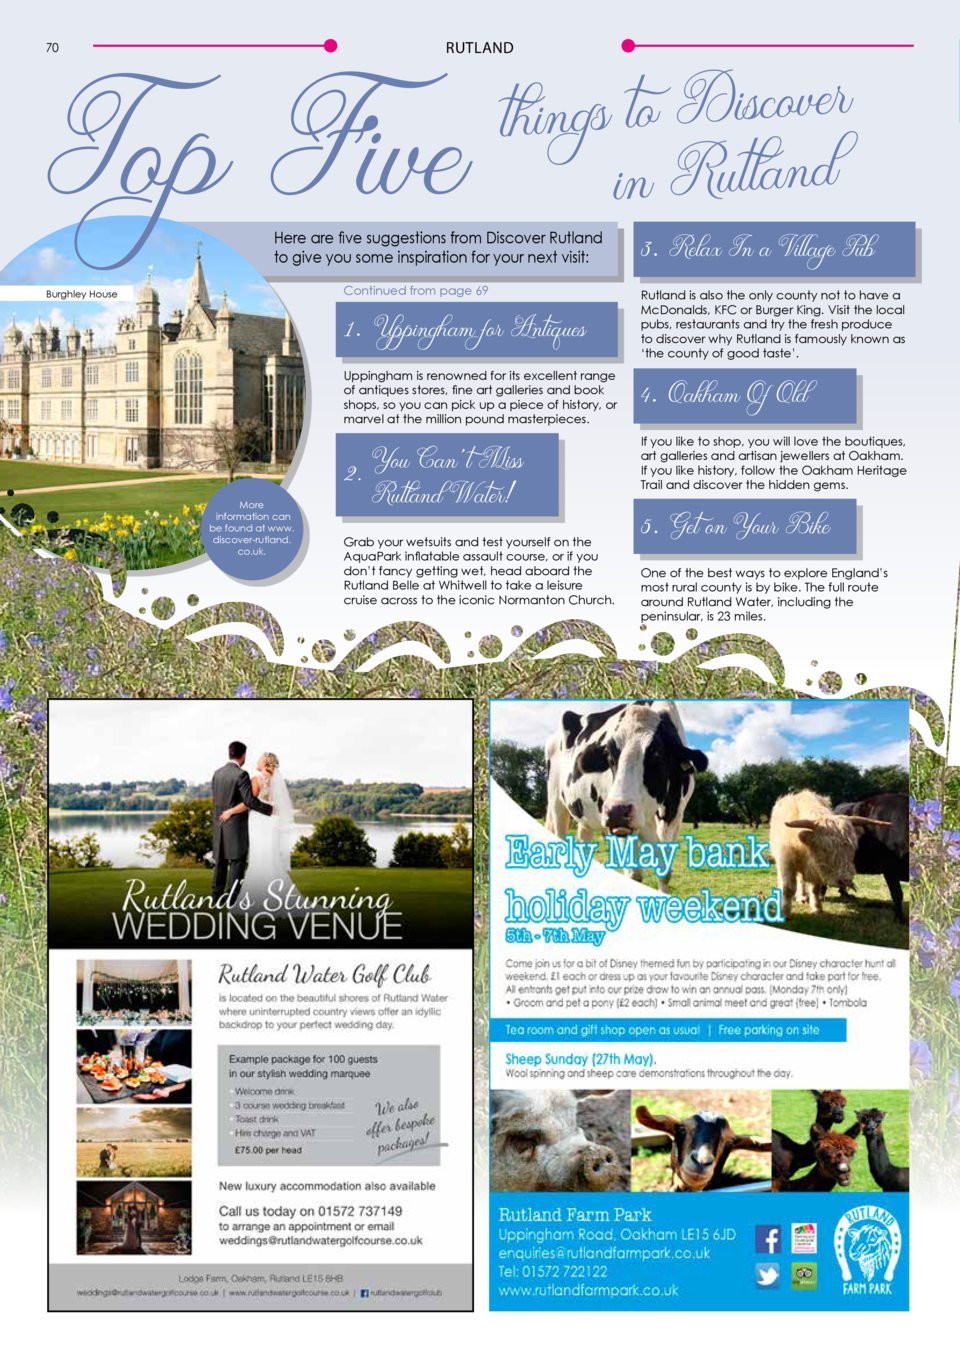 Top Five  r e v o c is D to s g in th d n a tl u R in    RUTLAND  70  Here are five suggestions from Discover Rutland to g...